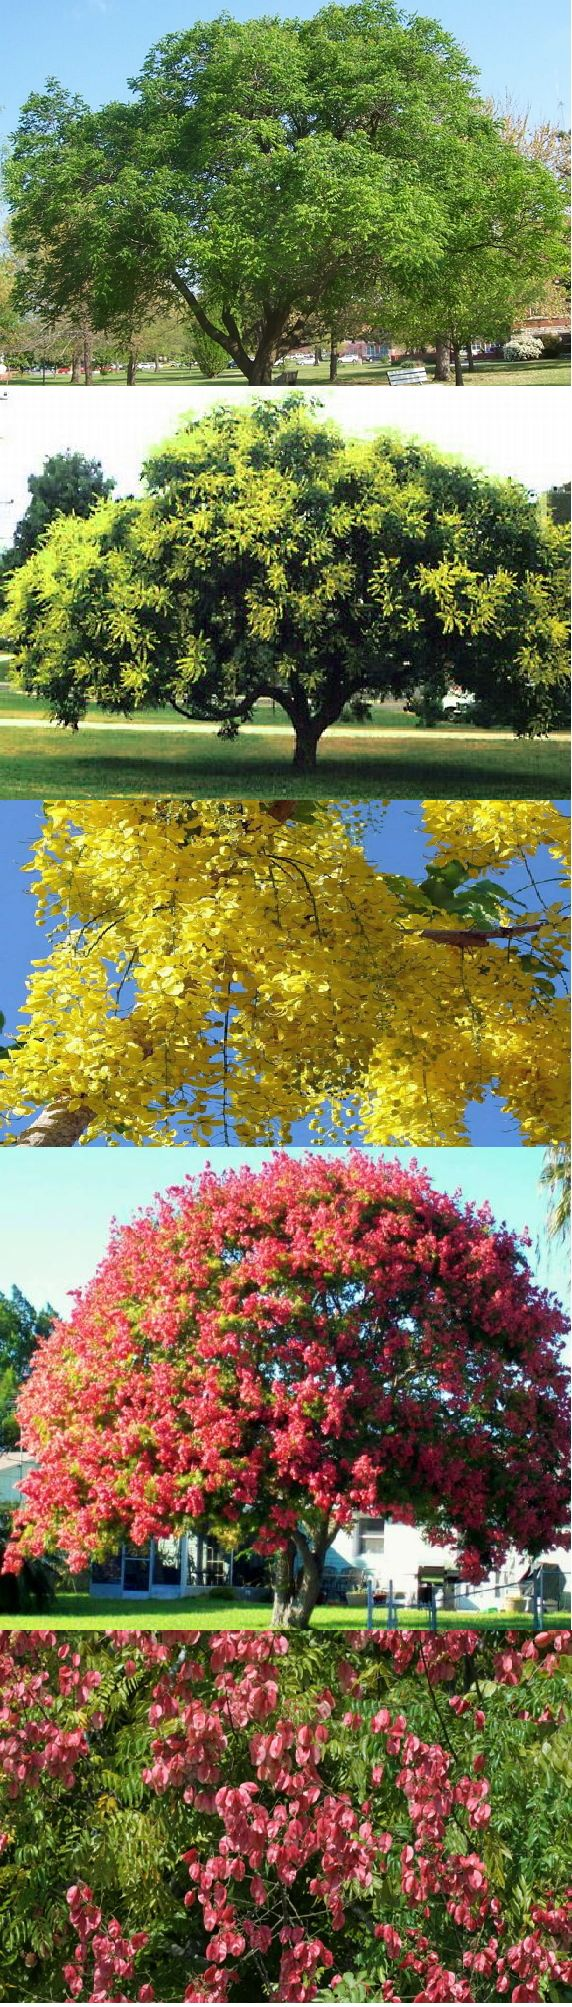 "Golden Rain Tree (Koelreuteria Paniculata) - Zone 5-9b Full Sun. 30' Height/Width. Beautiful, deciduous tree that provides lots of shade in summer and beautiful fall colors in Autumn.Great small shade tree in areas like: near utility lines & along streets. Fast growth (13"" to 24""+ per year & 50 yr life span). Average water needs & any well-drained soil. Tolerates drought, heat, wind, air pollution & some salt spray. Propagate by cuttings, self-seeds prolifically-Don't transplant in fall."